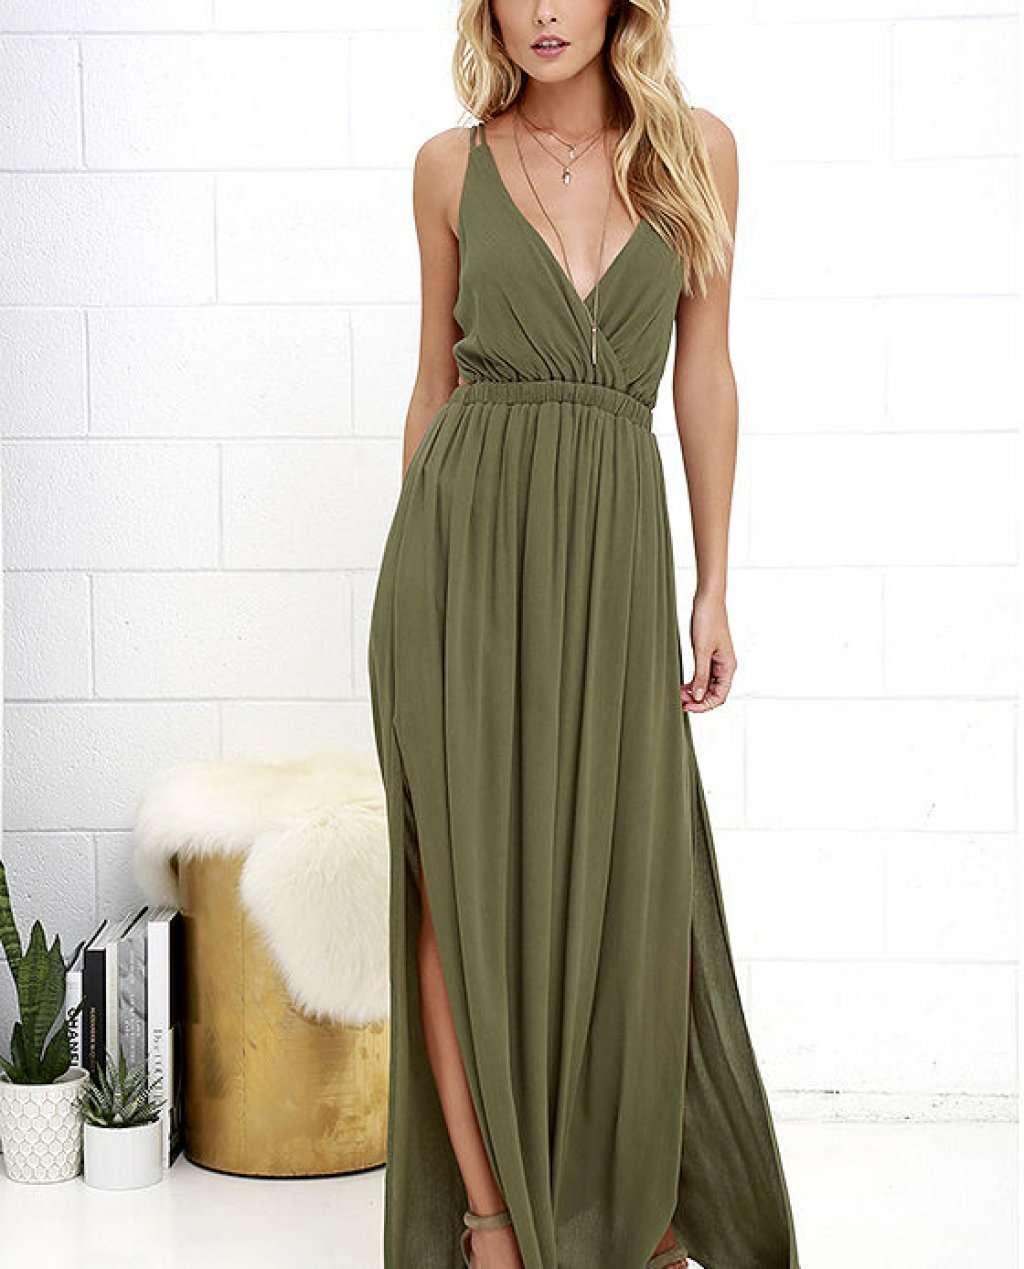 Lost in Paradise Olive Green Maxi Dress